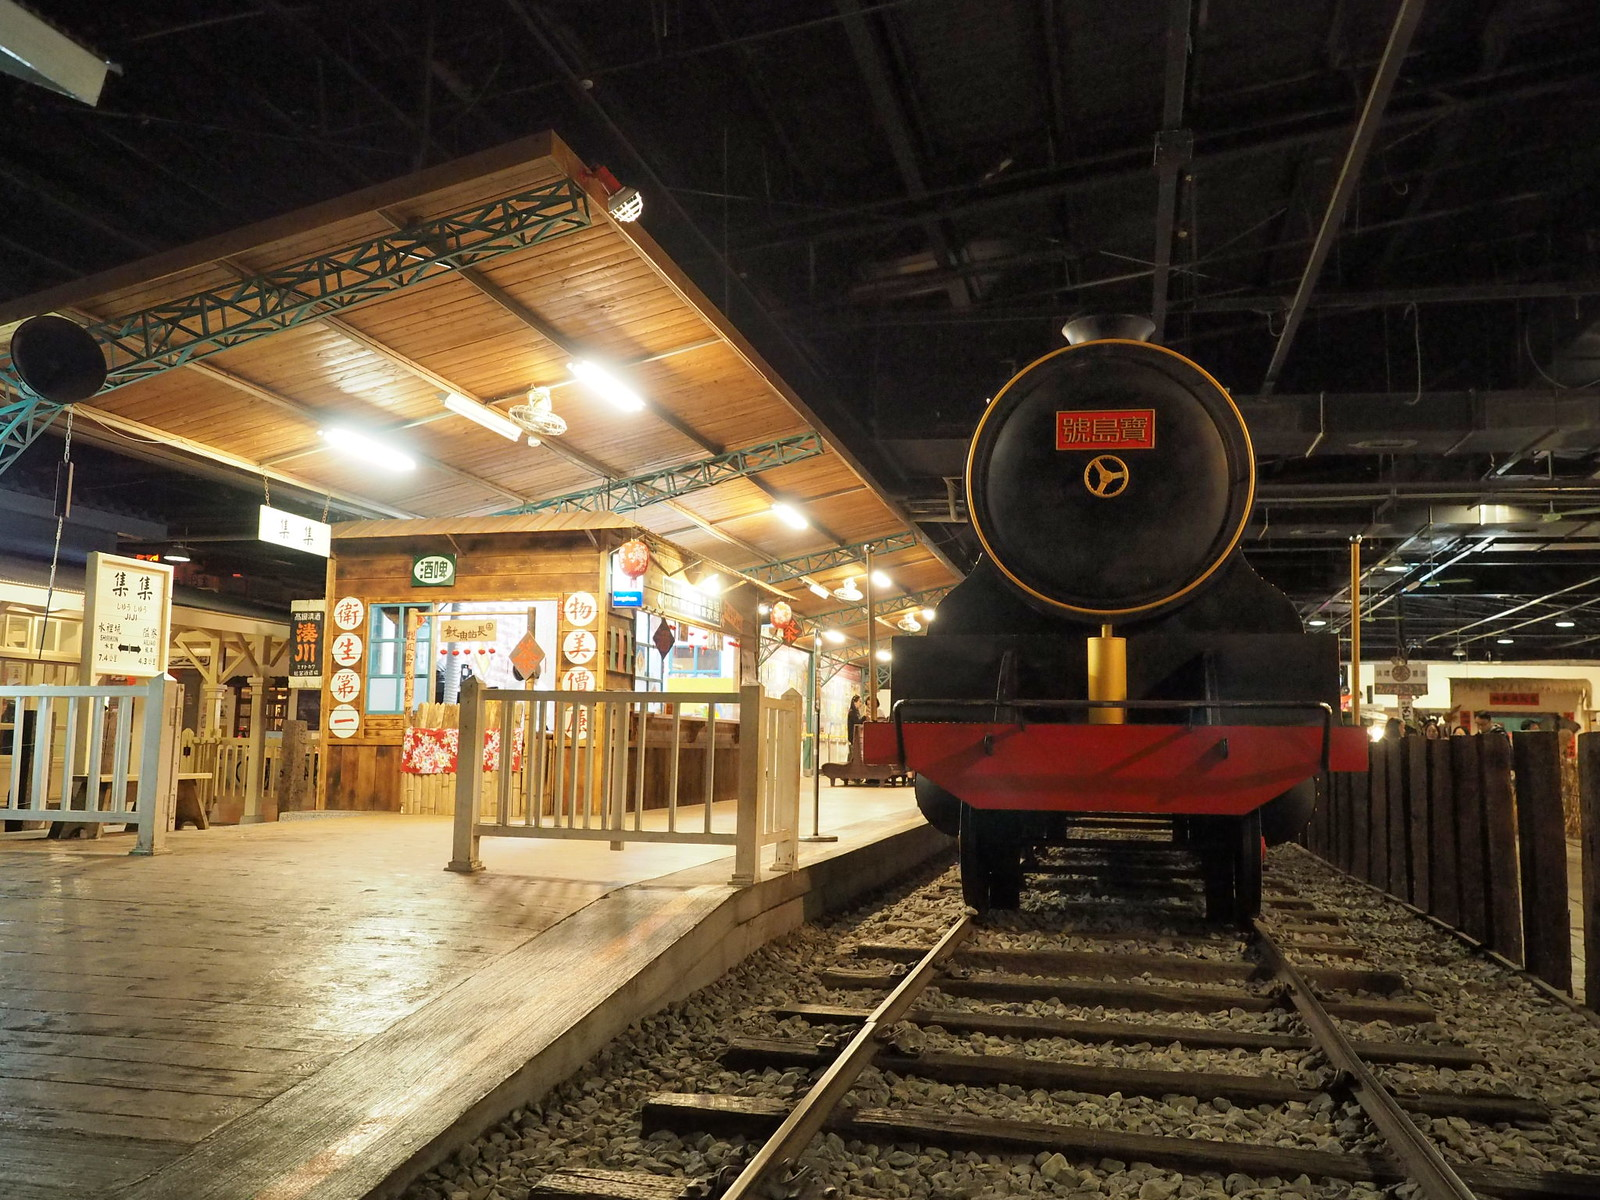 The steam train station in Taiwan Times Village.